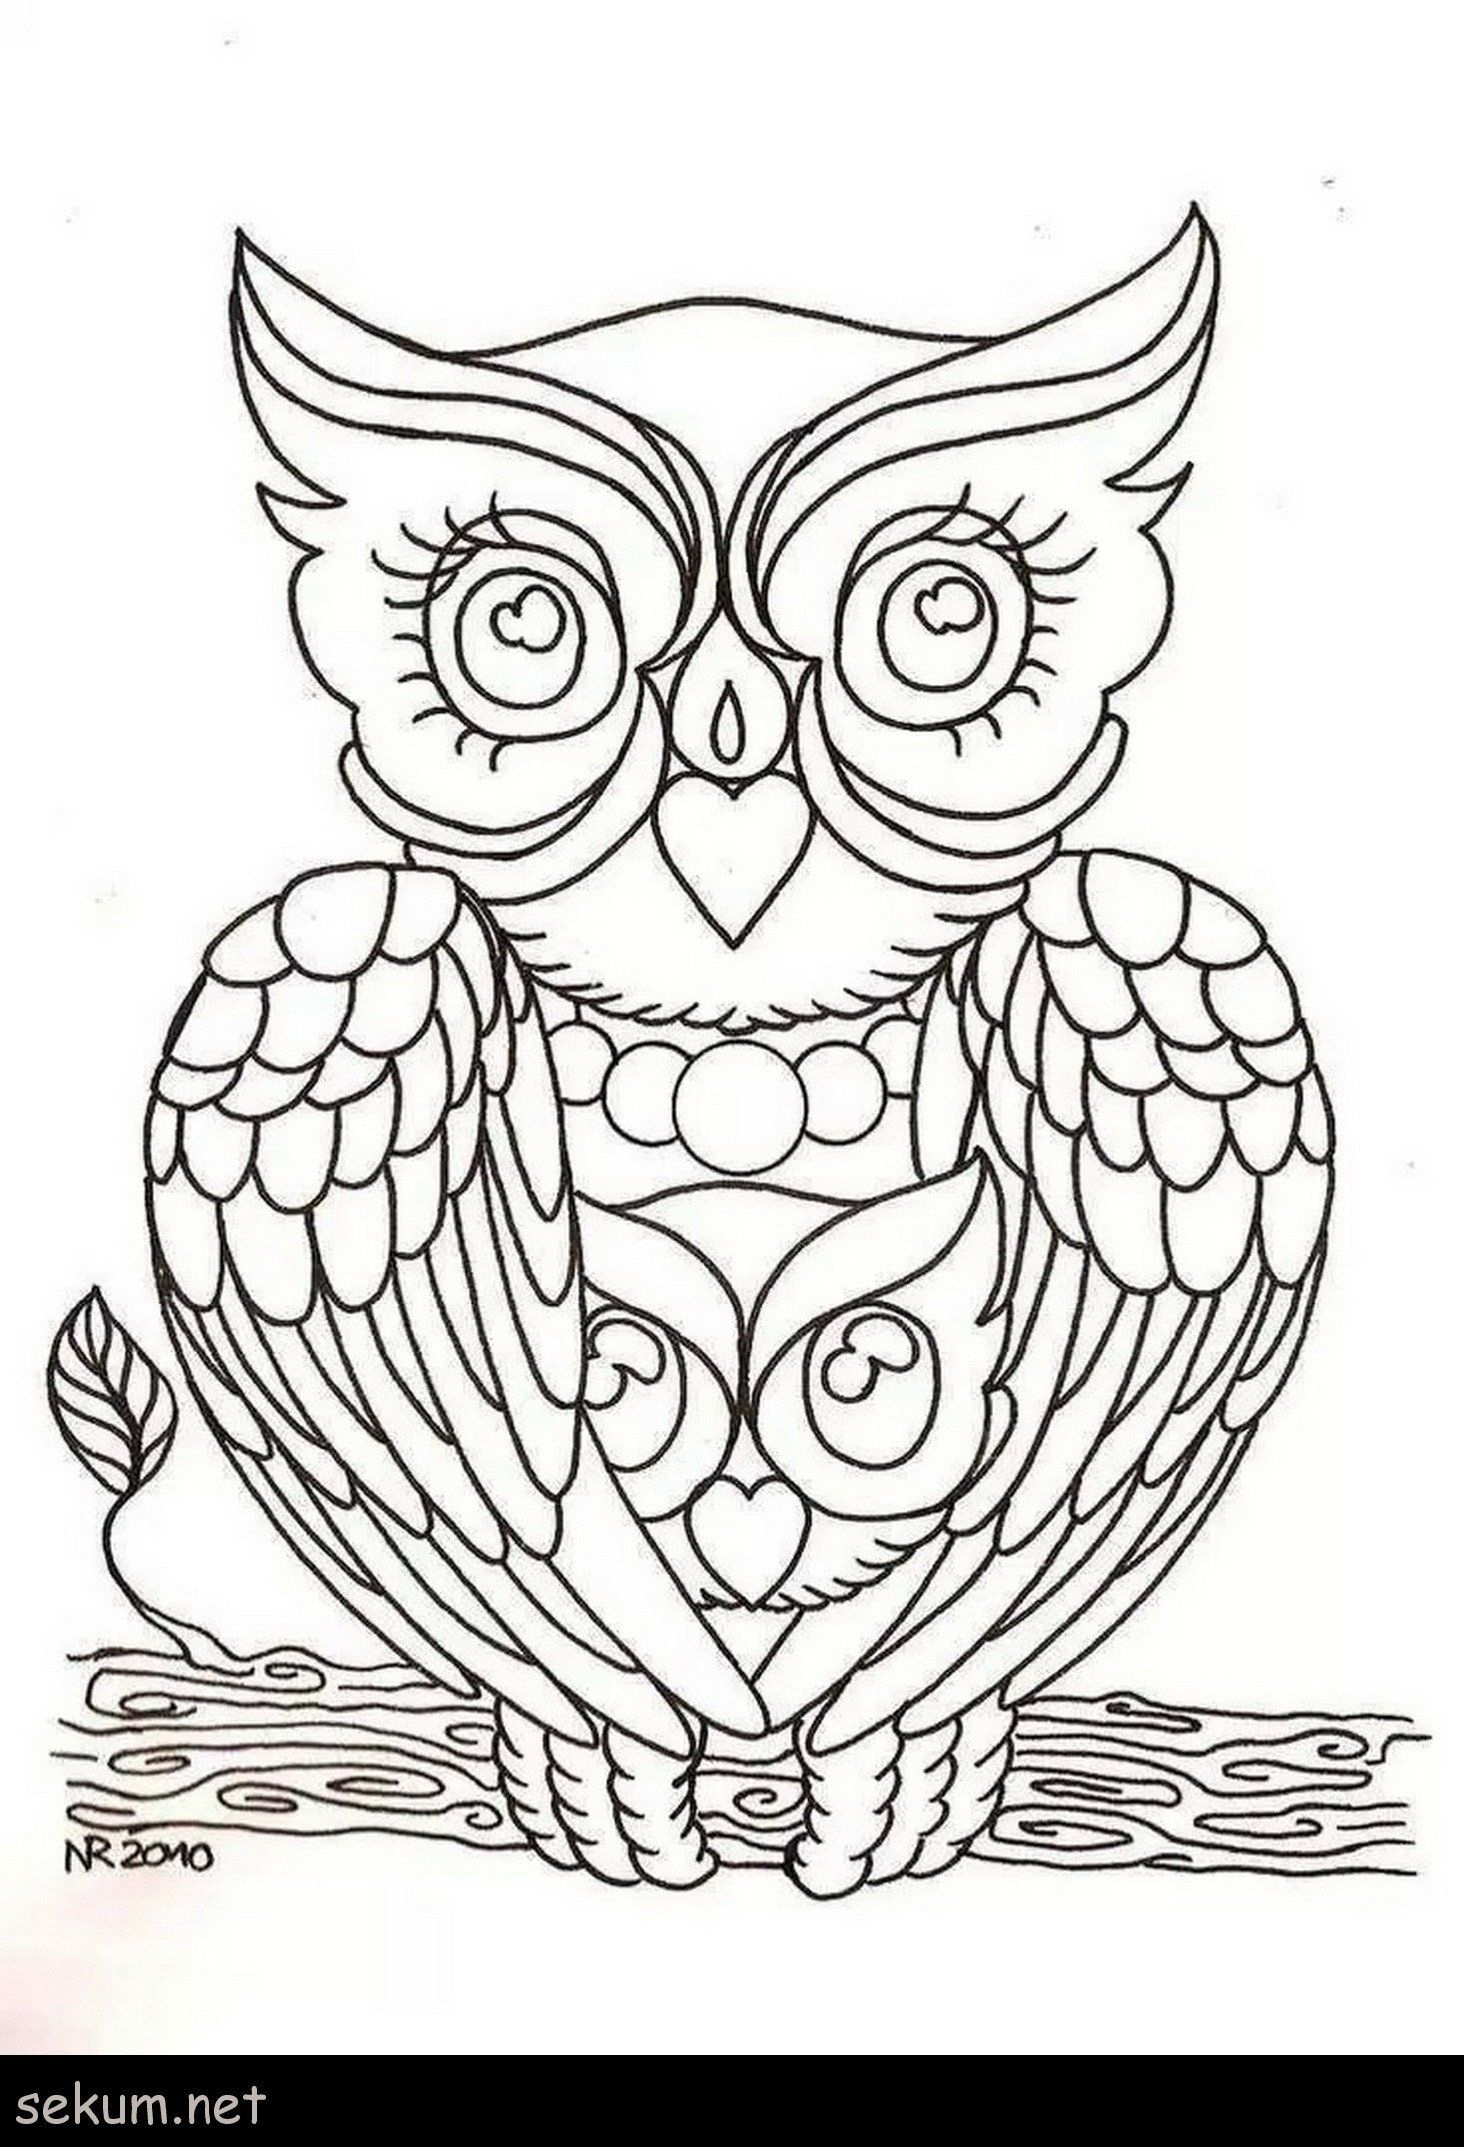 Owl Coloring Pages For Kids Coloring Pages Coloring Book Cute Owlloring For Kids Owl Coloring Pages Coloring Pages Coloring Books